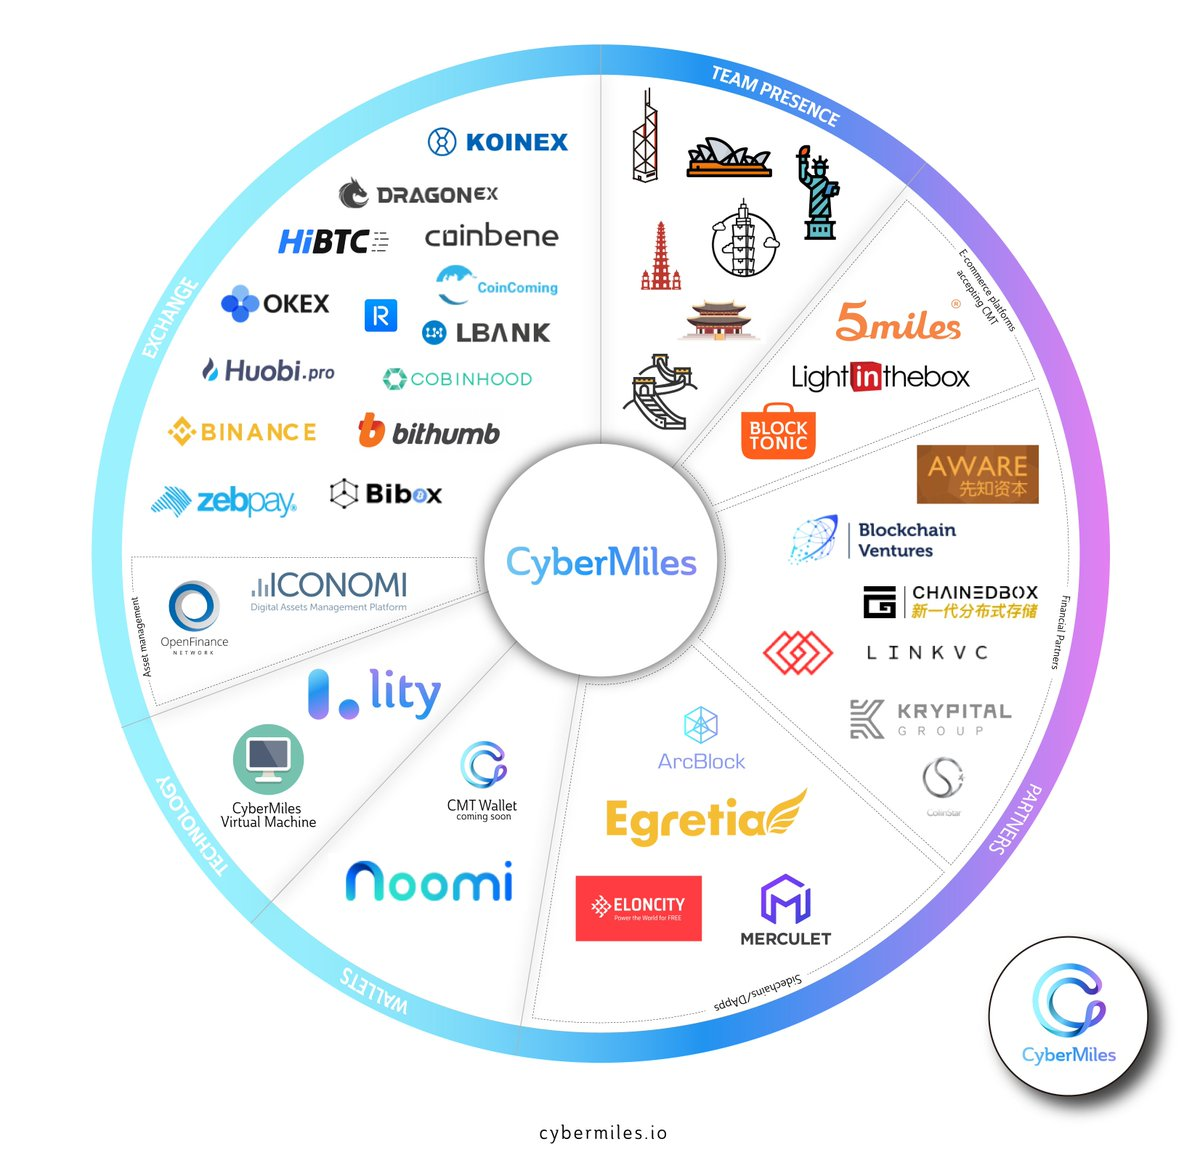 It's more than just a blockchain and a token, it's a growing ecosystem that  aims to disrupt the actual e-commerce.